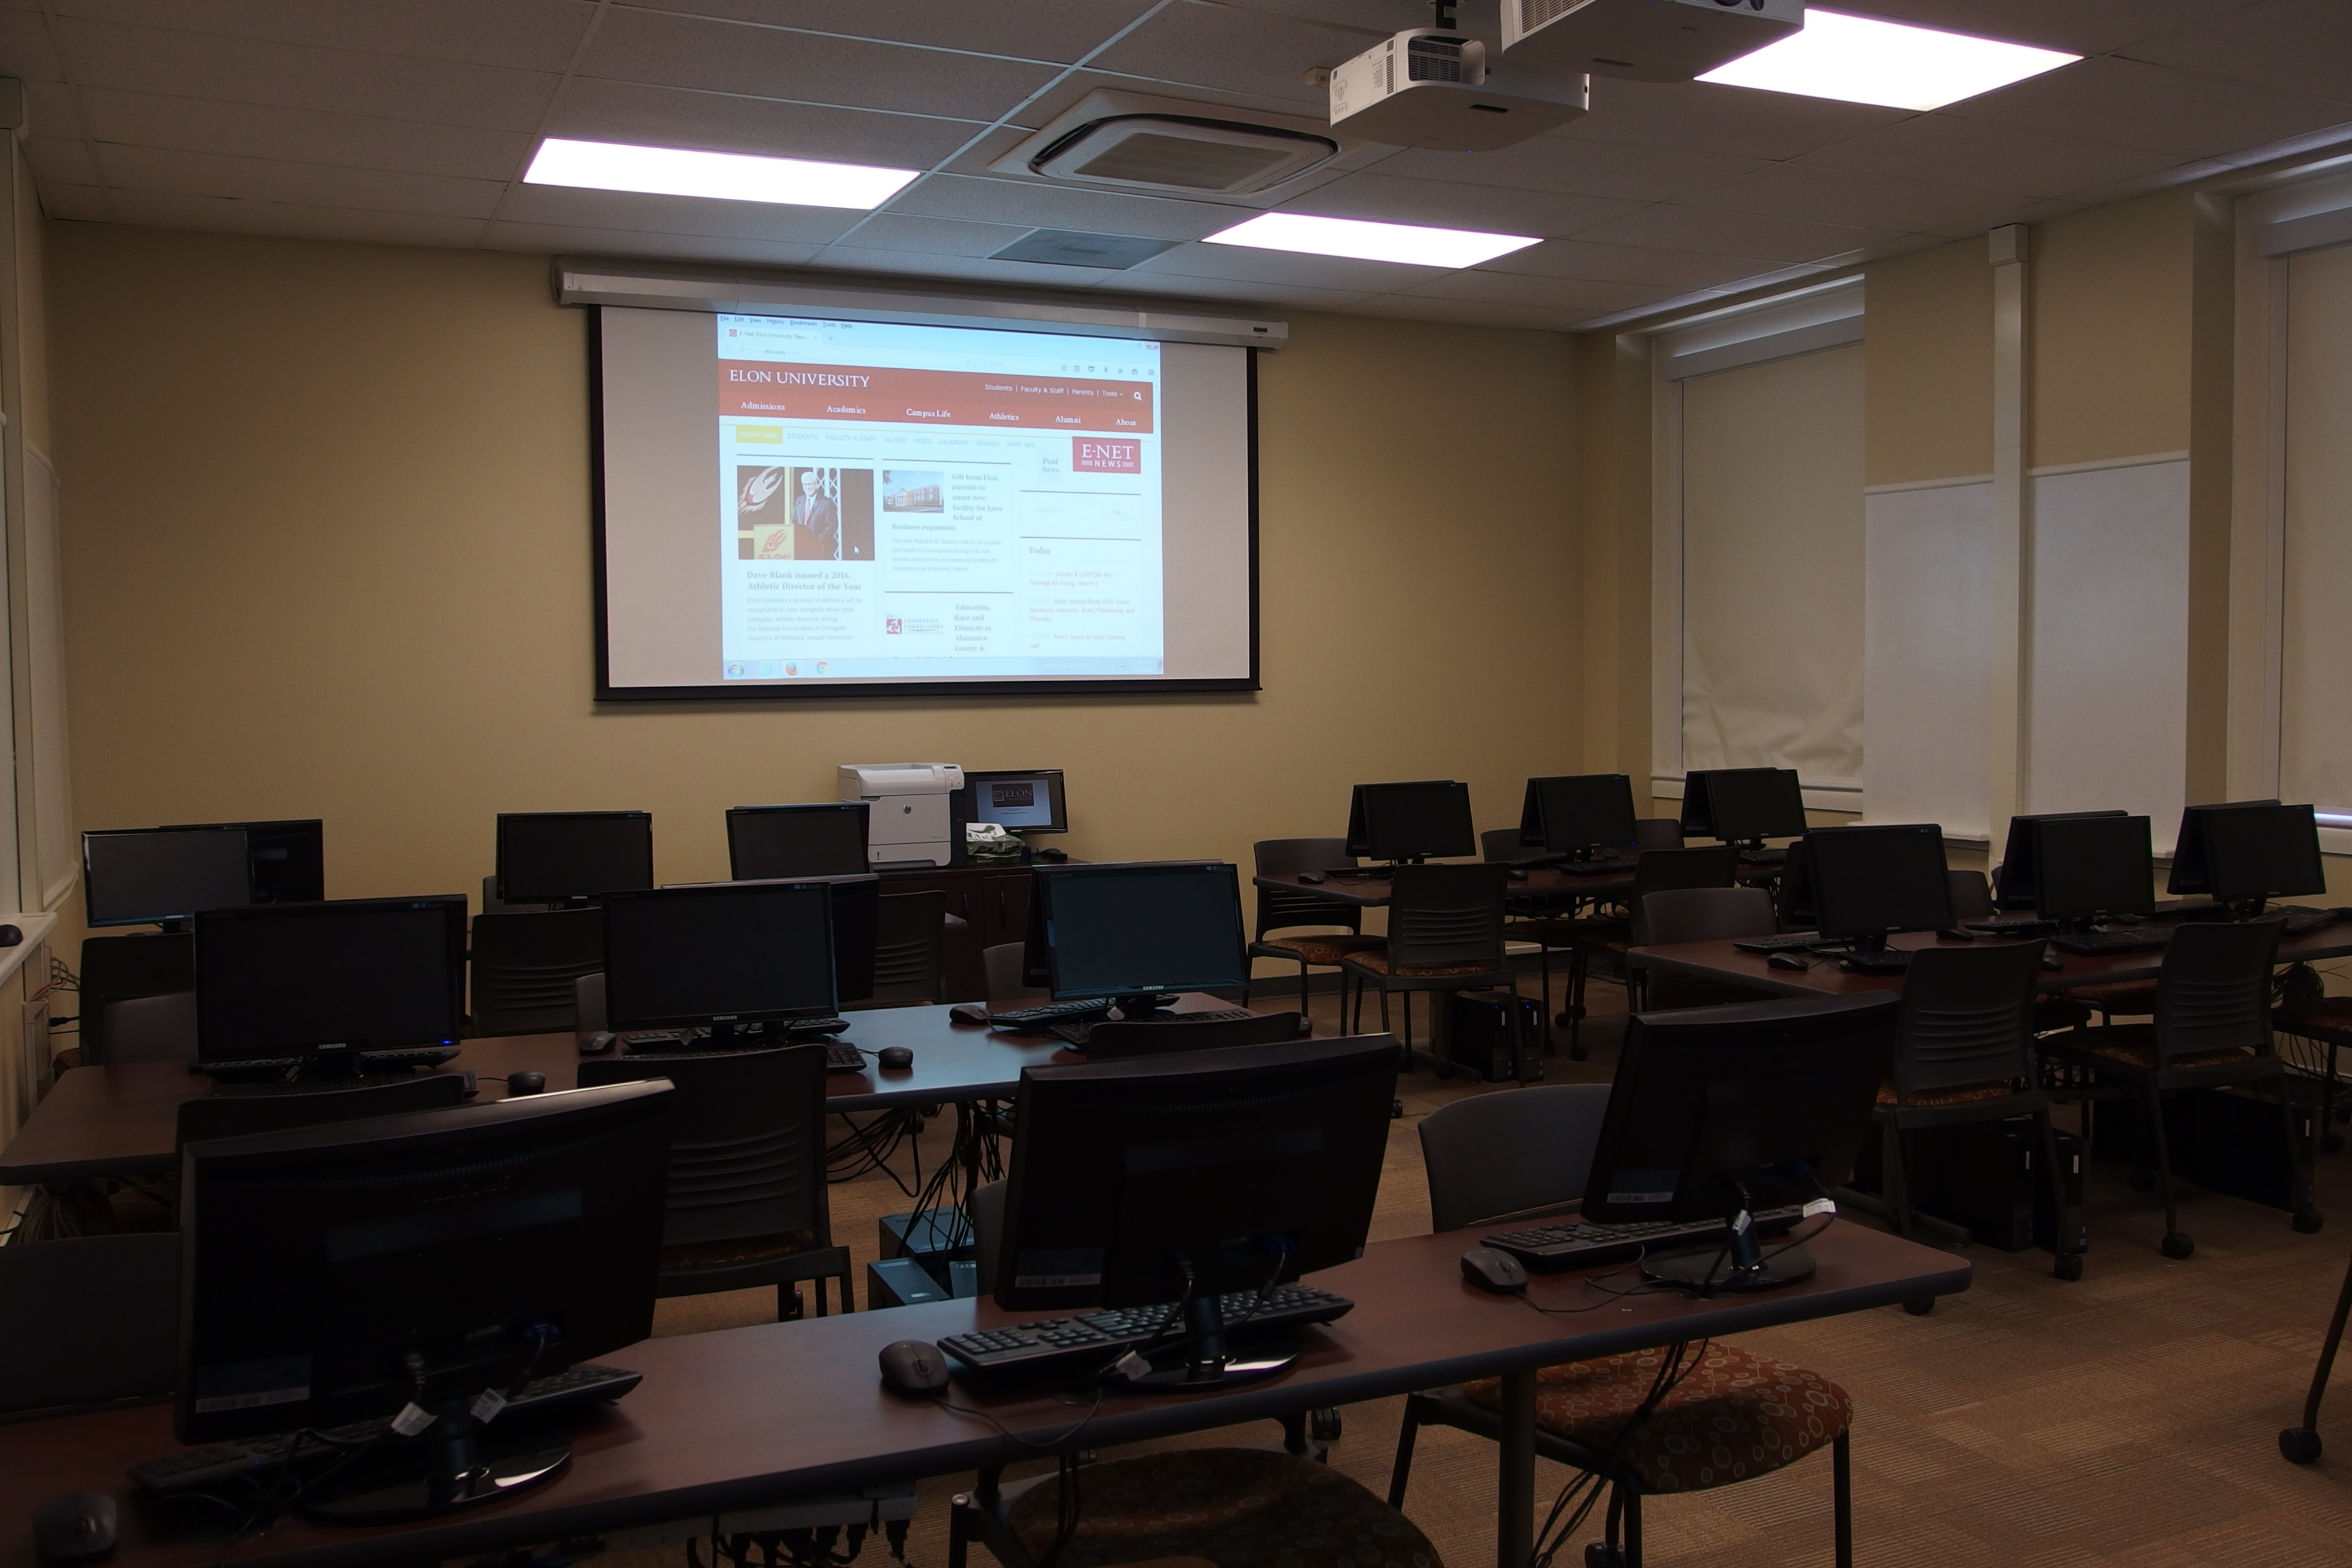 Photo of the classroom taken from the entrance of the room towards the back right corner and includes projection screen as well as student work stations